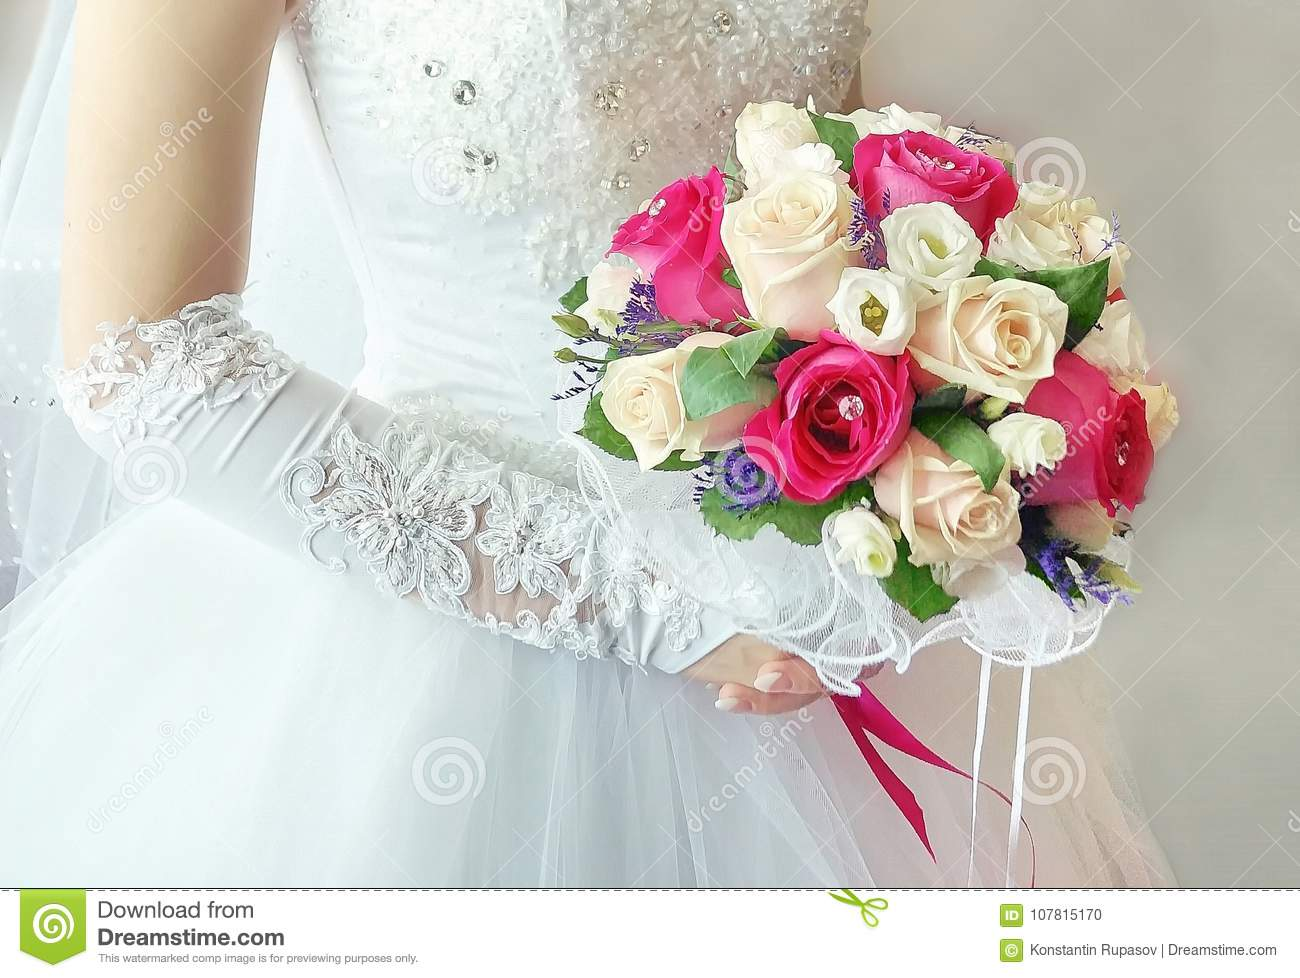 Wedding Bride Dress Bouquet Of Roses Red And White Stock Photo ...